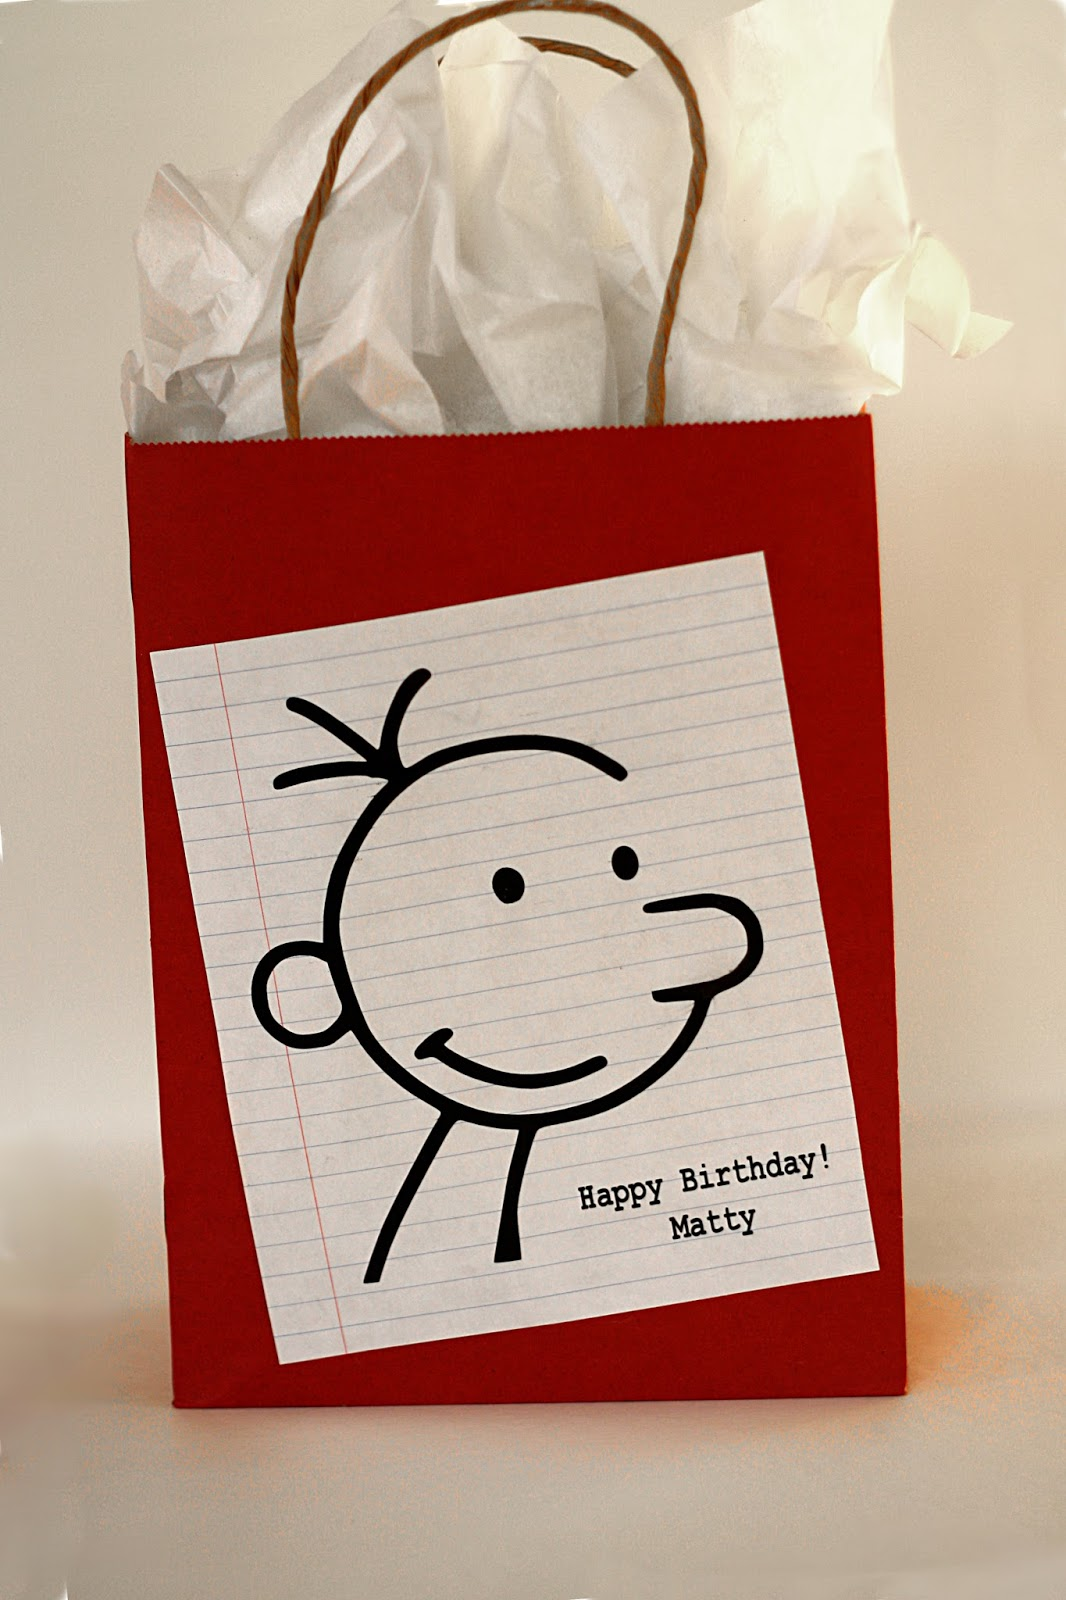 Keeping My Cents Diary Of A Wimpy Kid Birthday Party